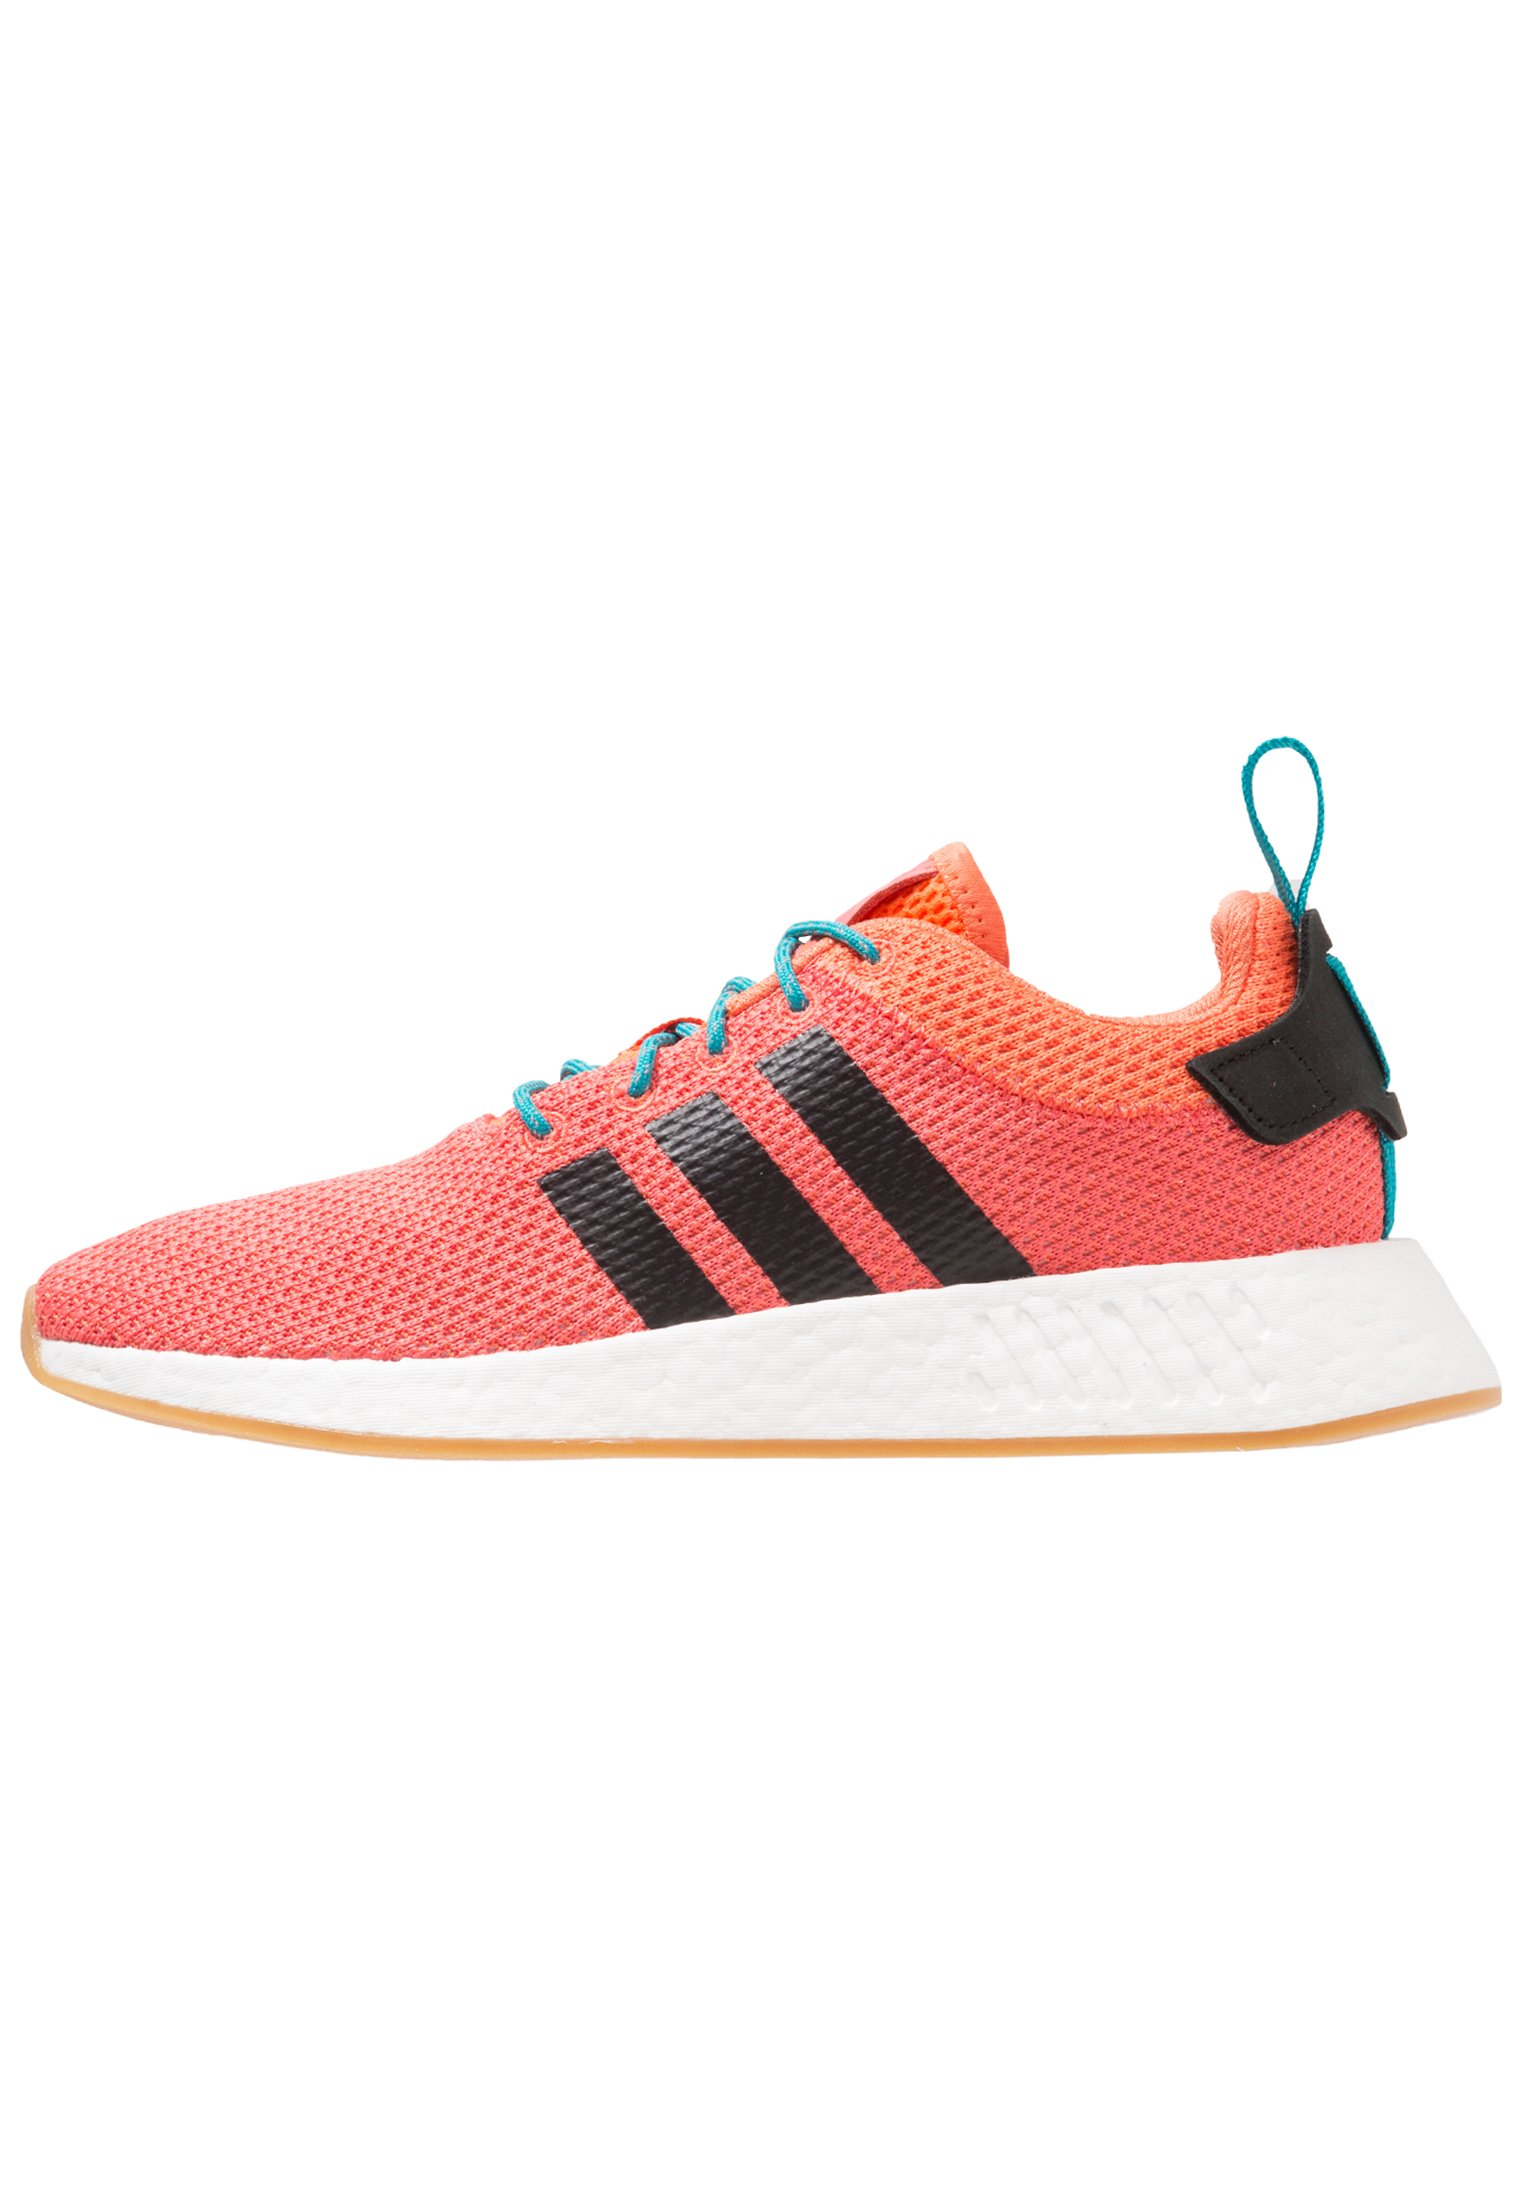 adidas Originals NMD R2 SUMMER Joggesko trace orange